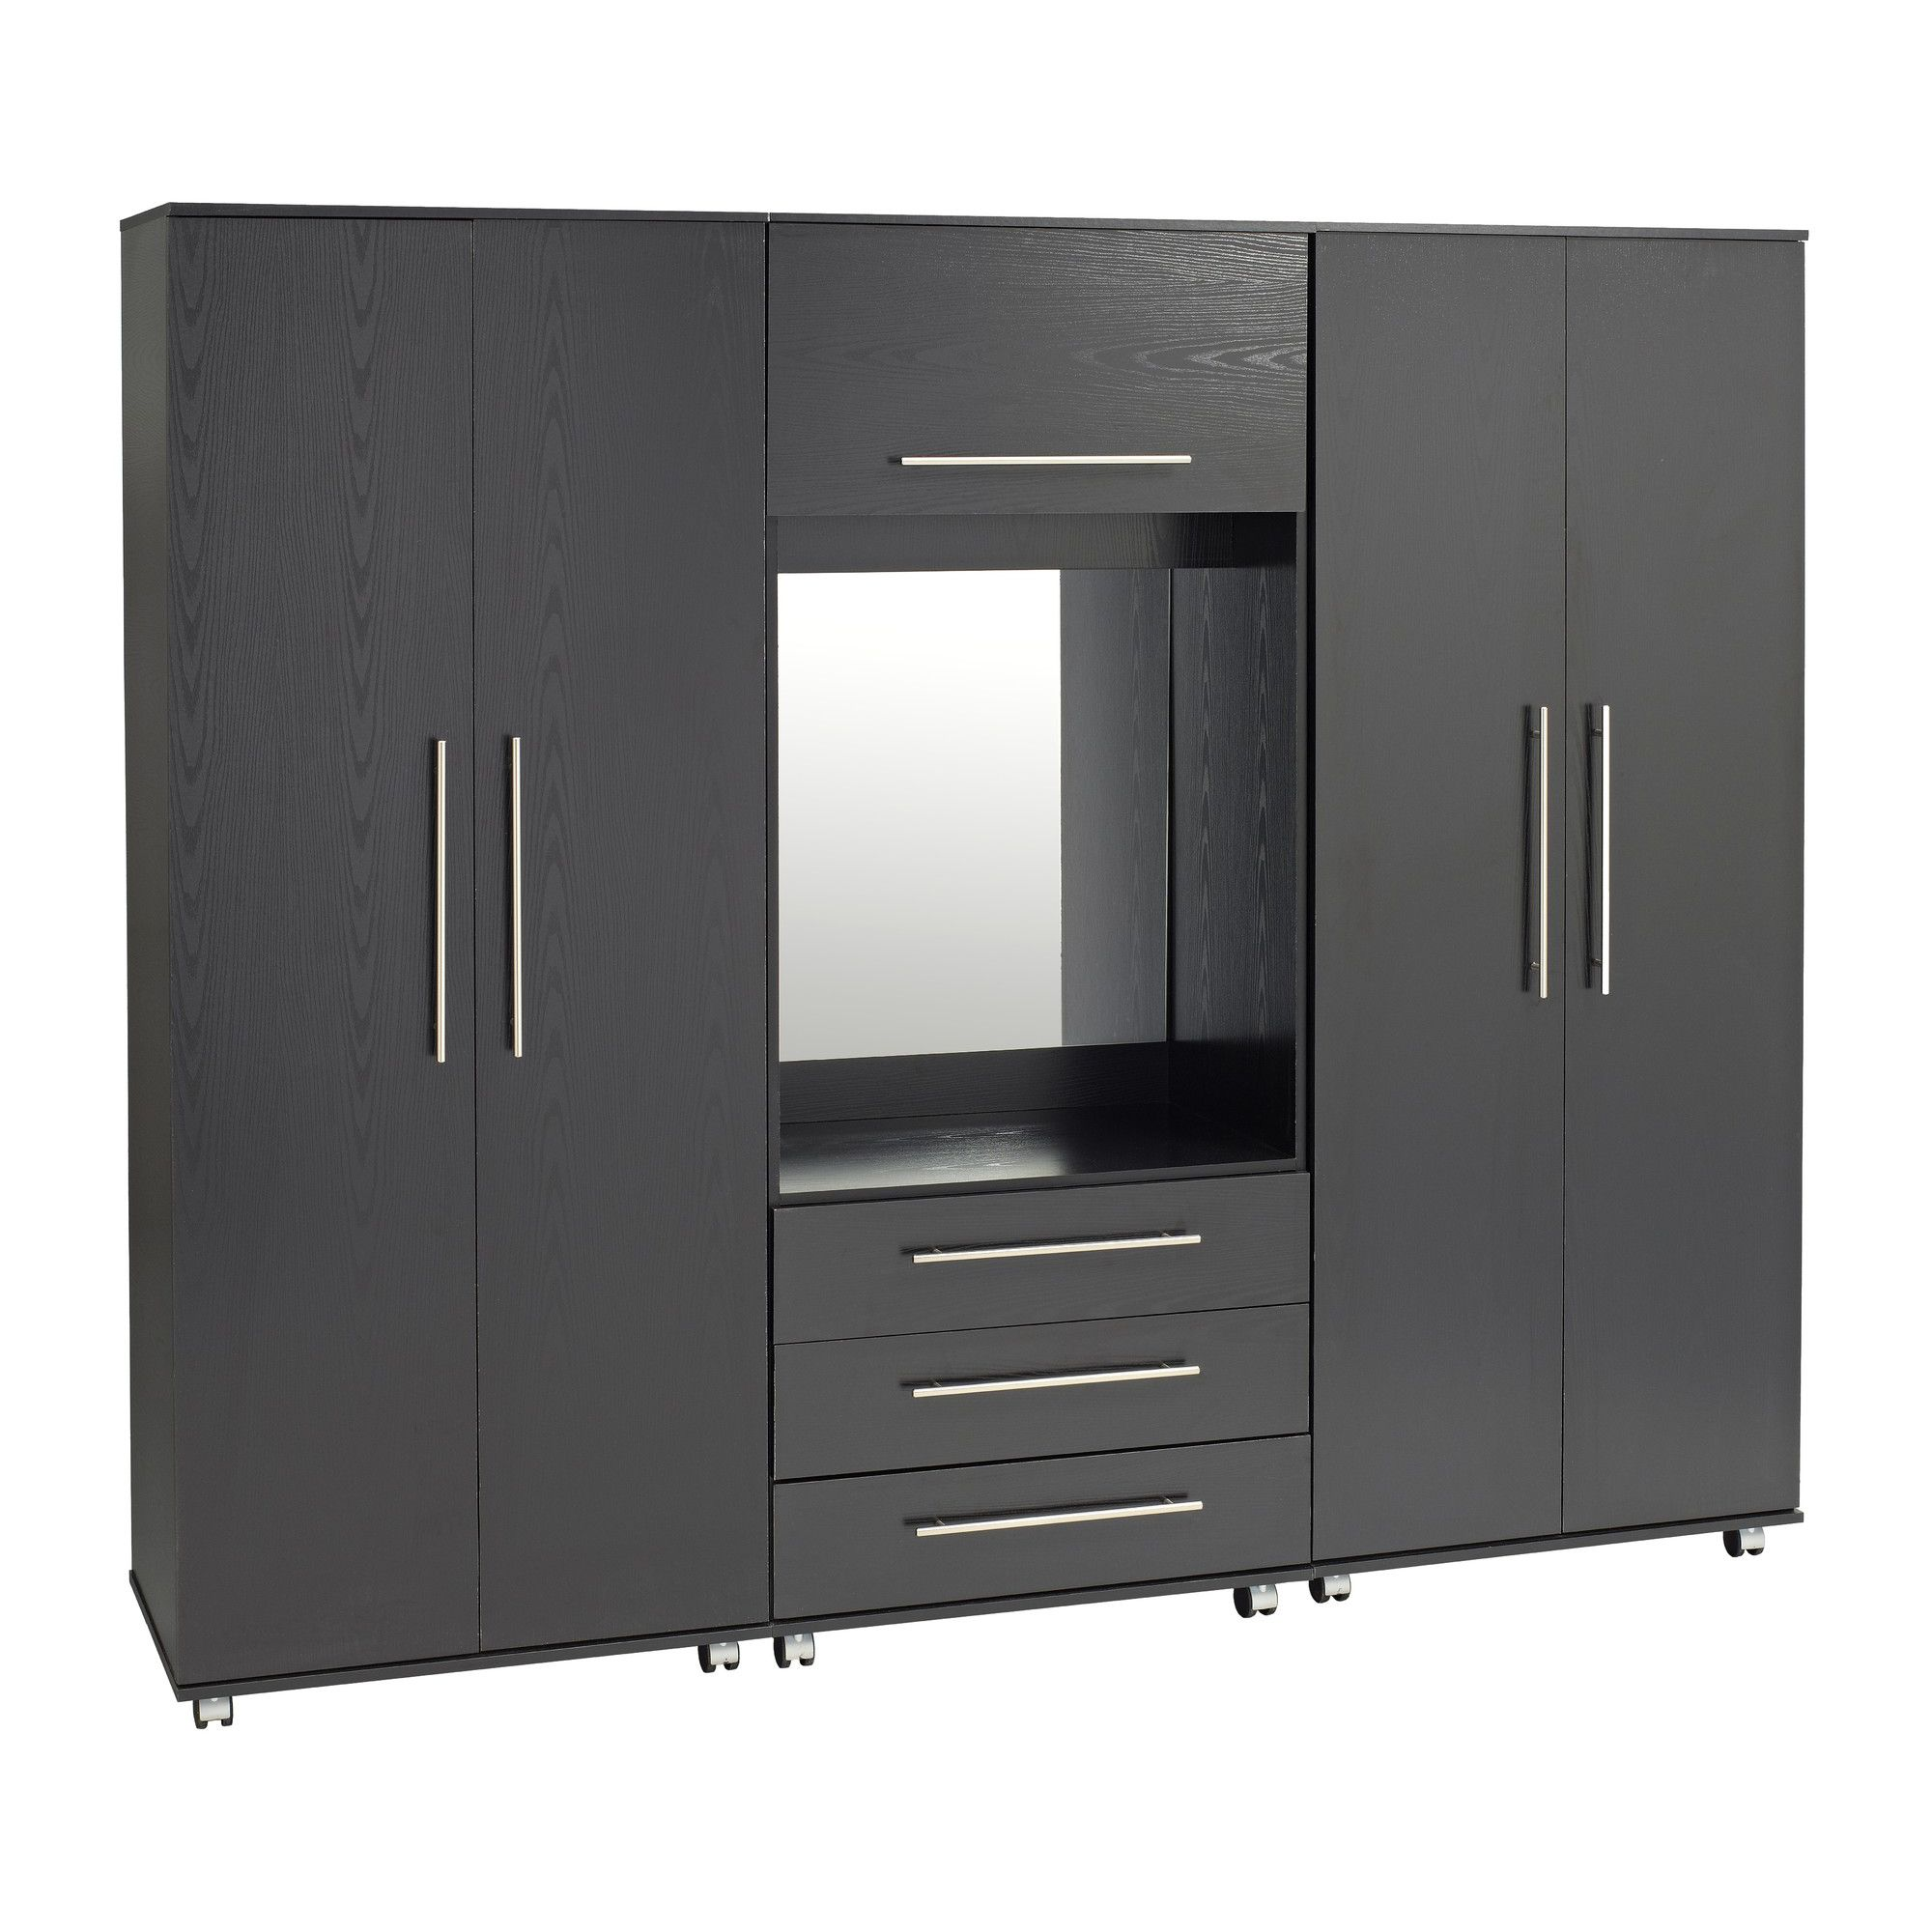 Ideal Furniture Bobby Fitment Wardrobe - Beech at Tesco Direct